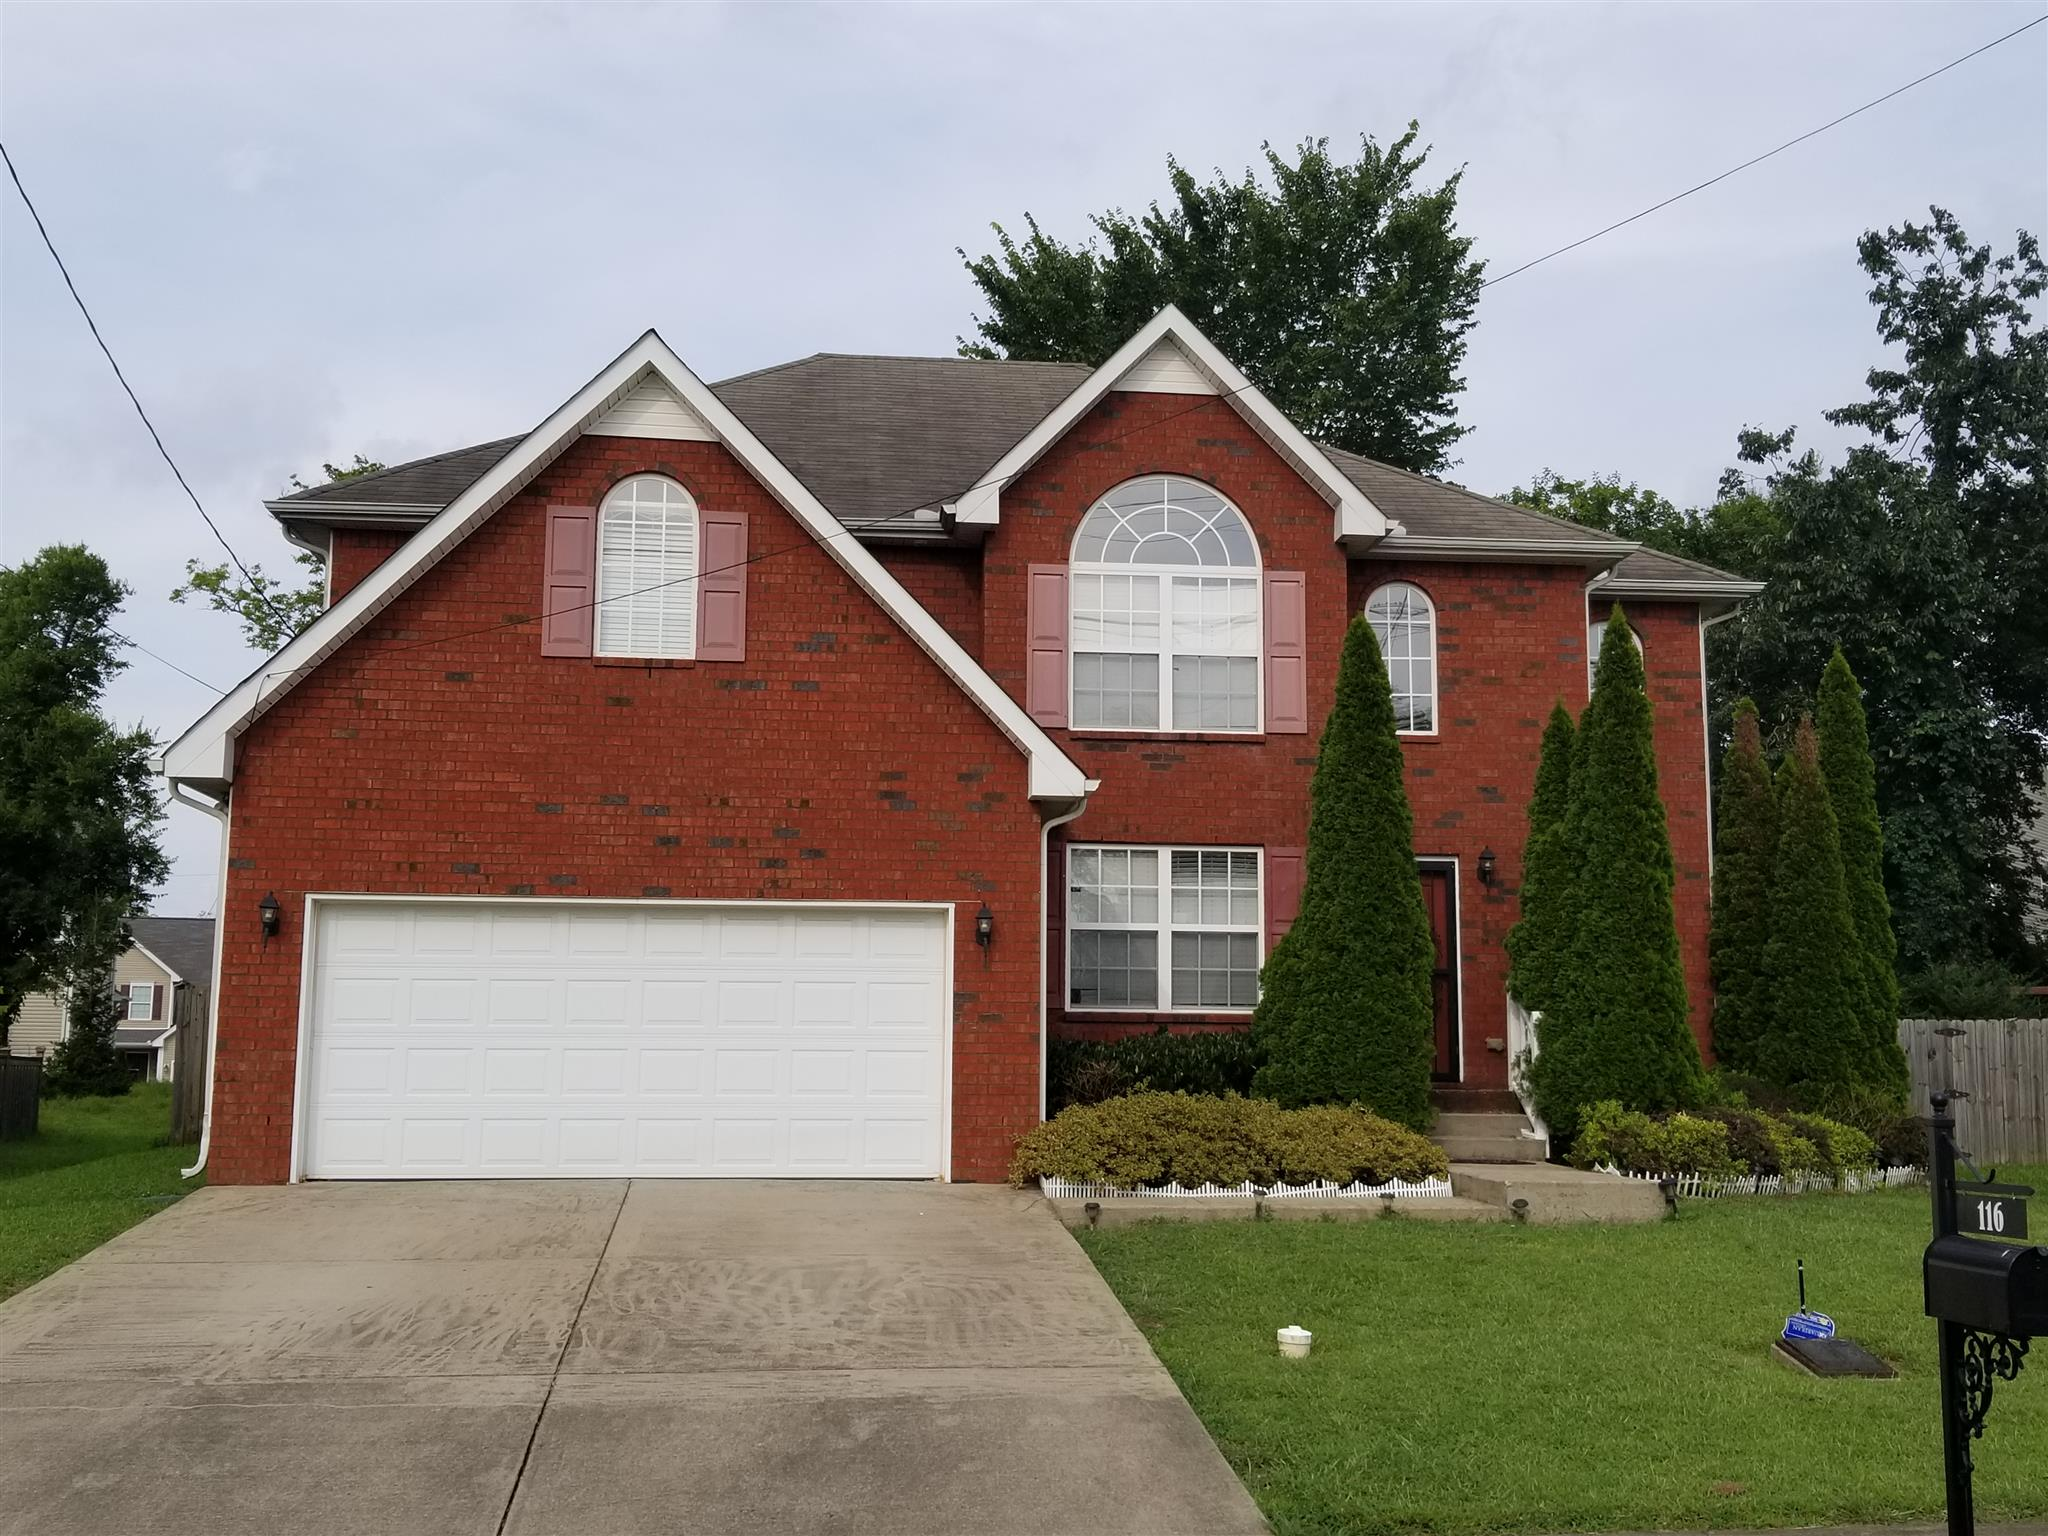 116 Grovedale Trce, Nashville-Antioch in Davidson County County, TN 37013 Home for Sale